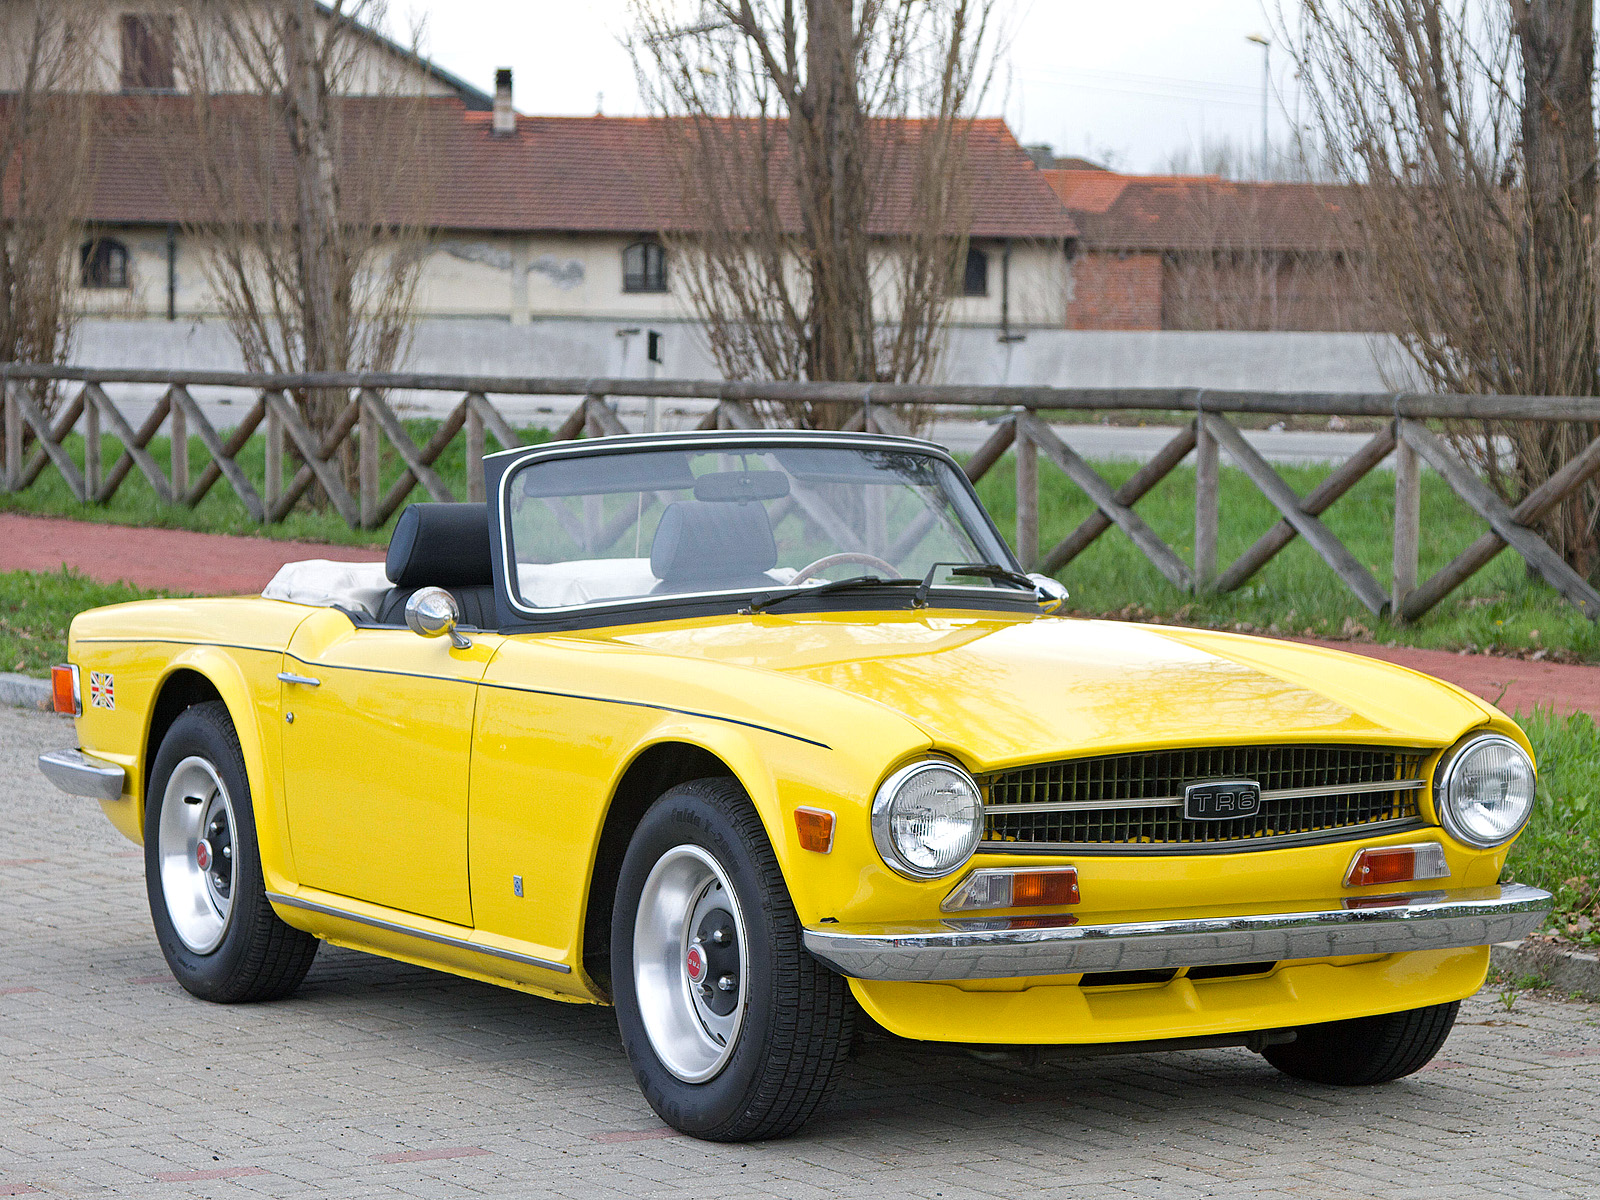 Triumph TRG photos - PhotoGallery with 3 pics| CarsBase.com